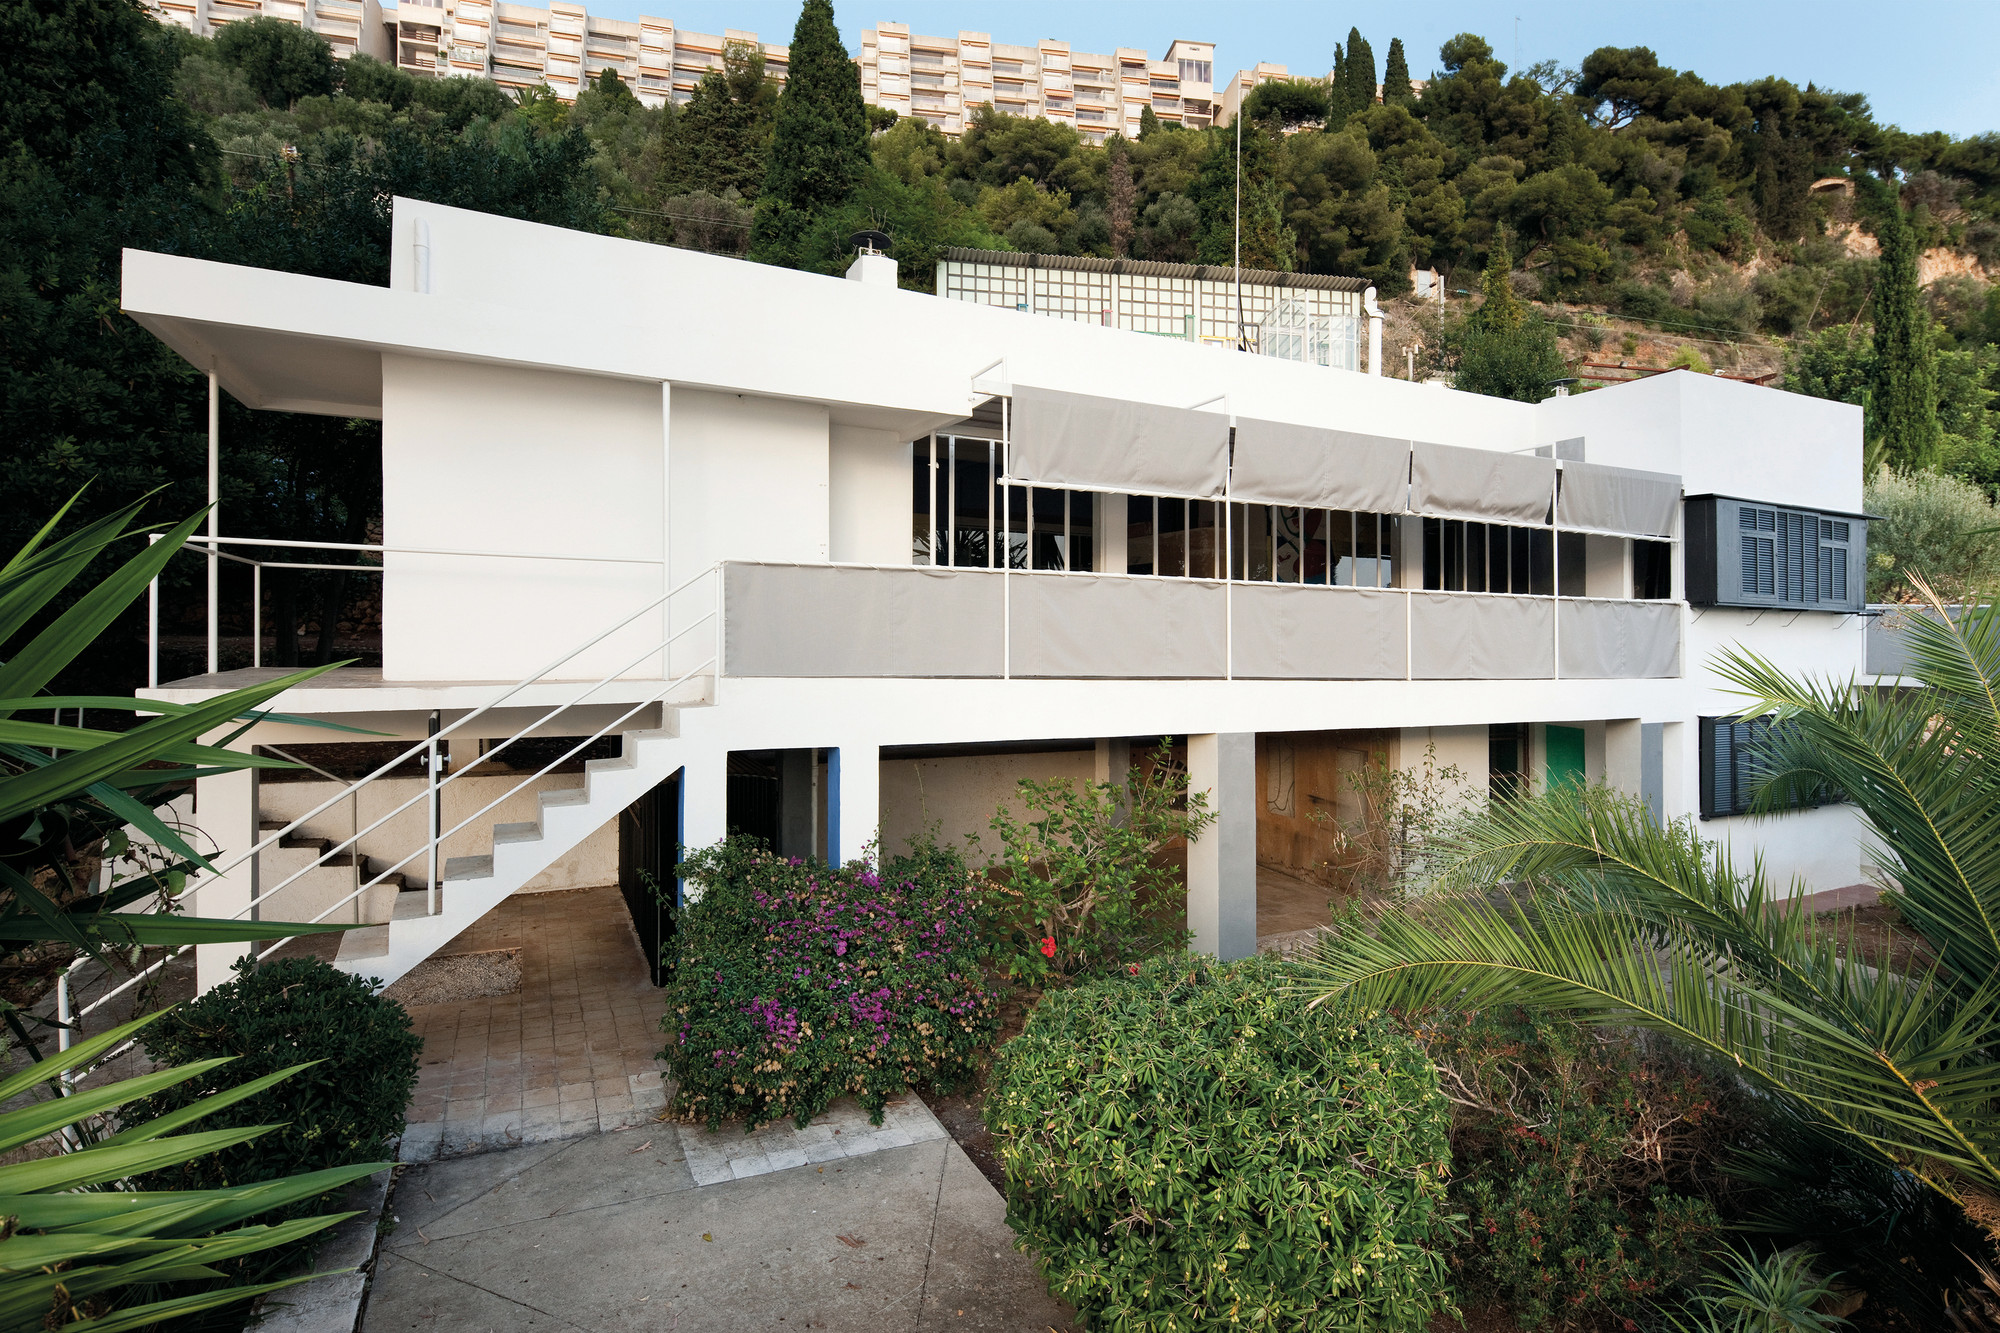 Images from the Much-Anticipated Restoration of Eileen Gray's E-1027, Villa E-1027 / Eileen Gray and Jean Badovici. Image © Manuel Bougot